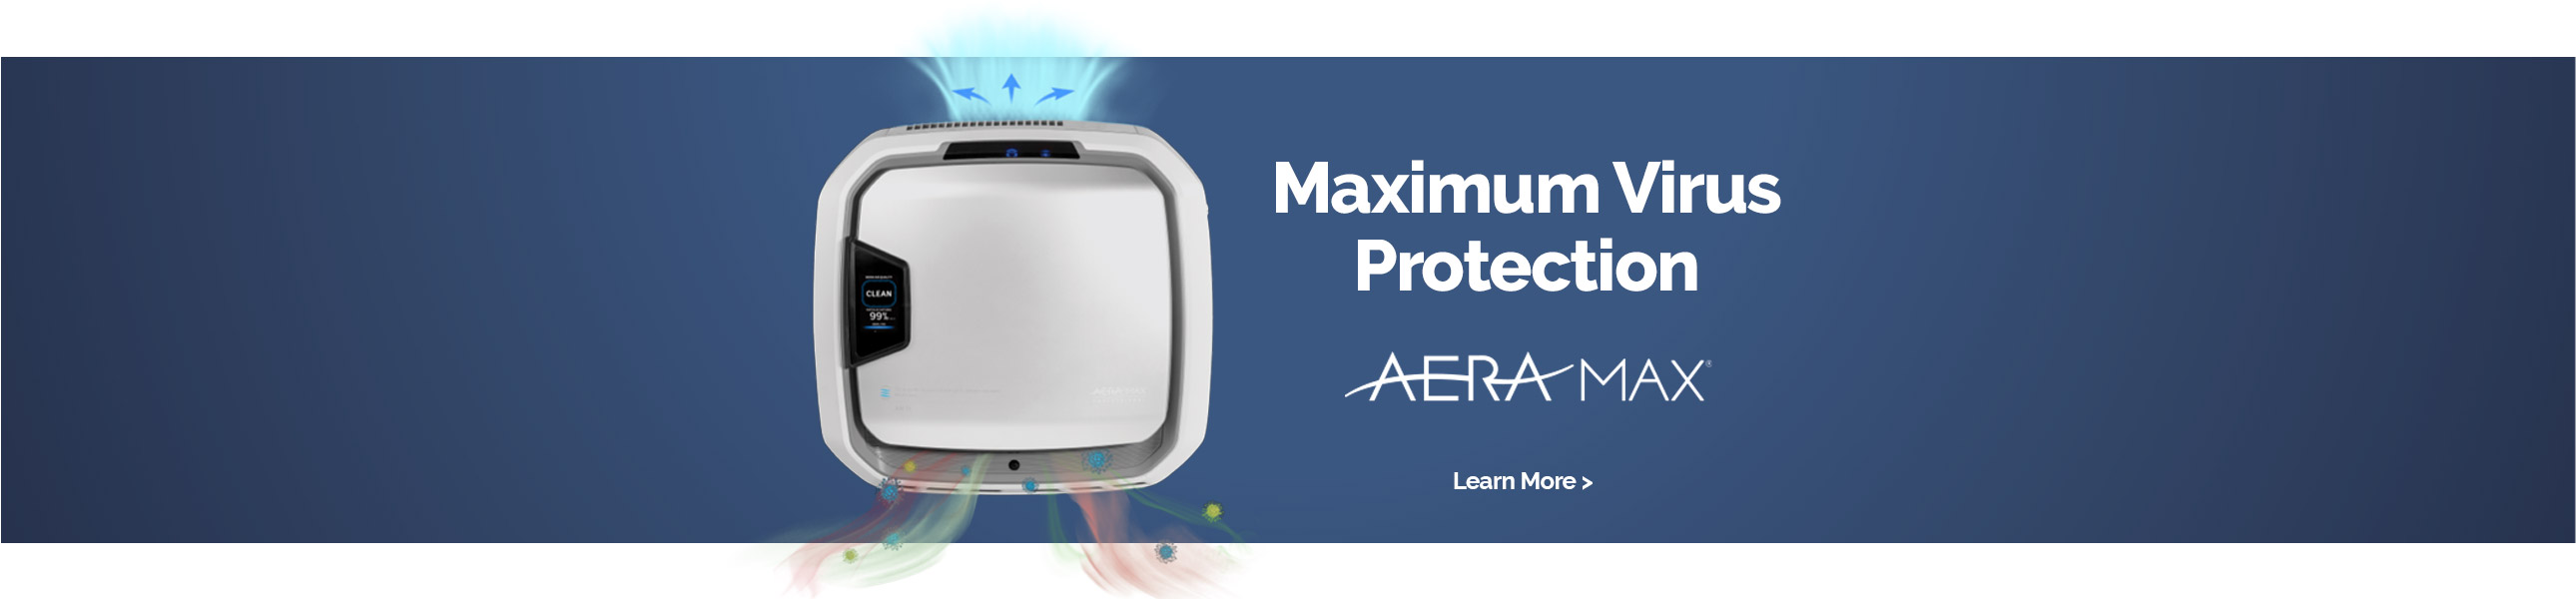 Maximum Virus Protection - Fellowes Aeramax Air Purifiers